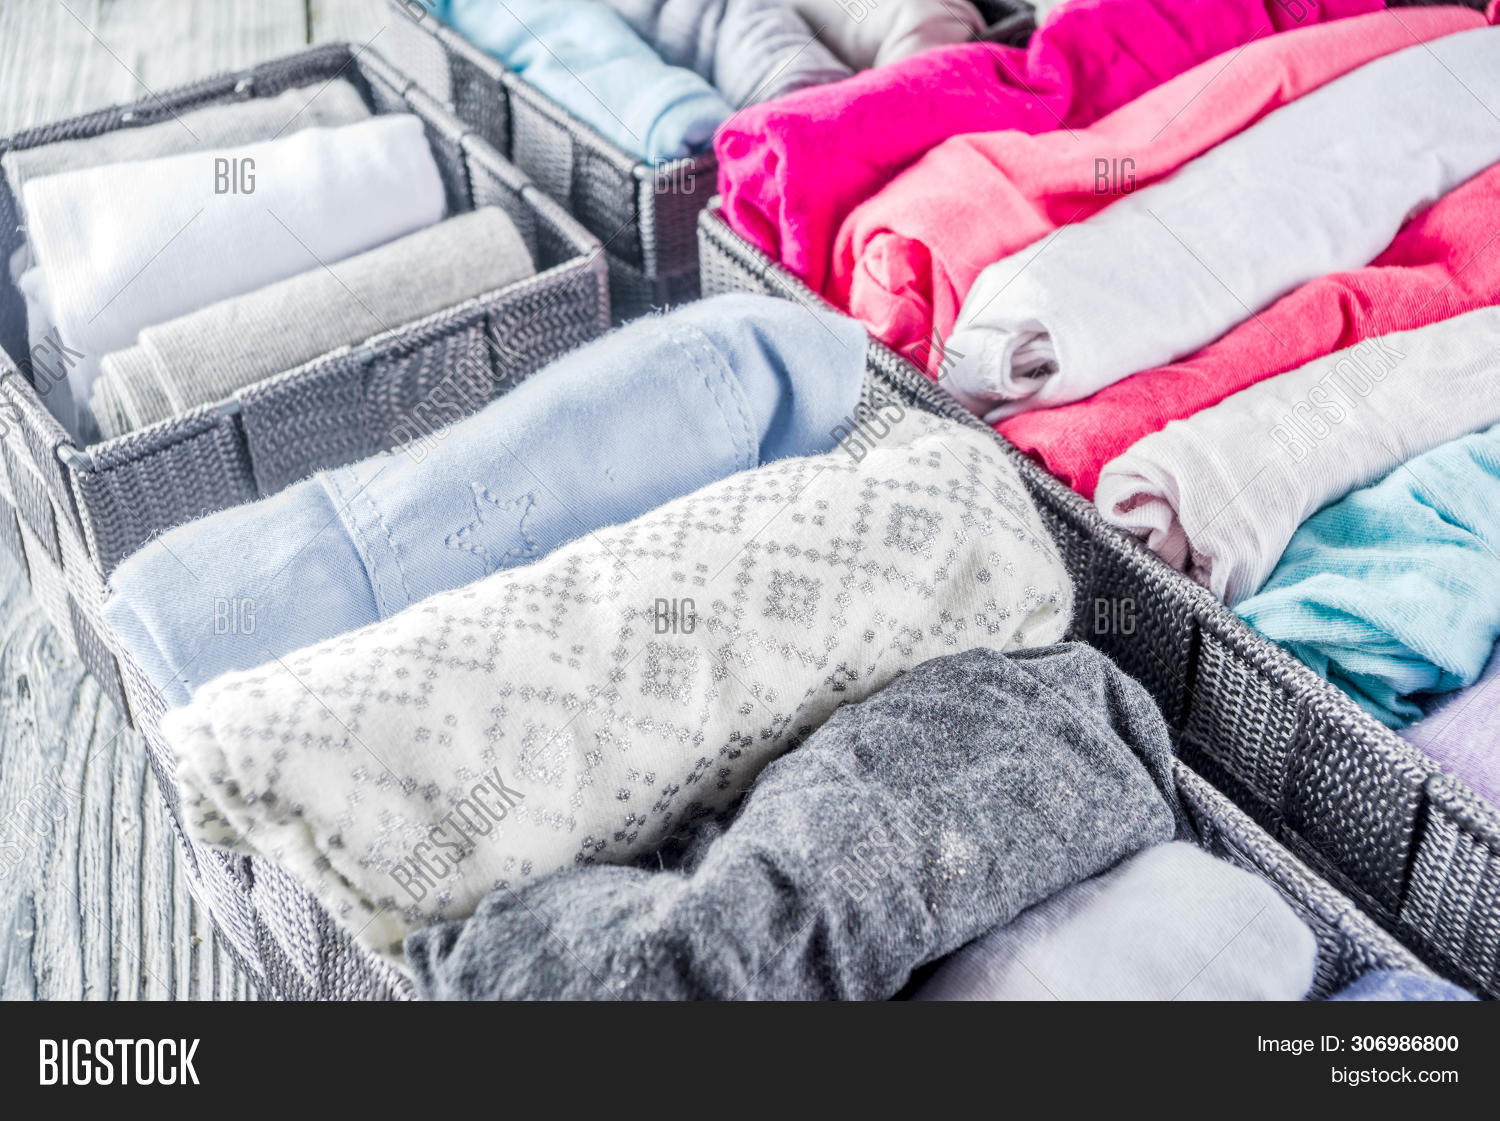 House,Kondo,Marie,Vertical,above,background,box,clean,cleaning,closet,clothes,clothing,color,dresser,fashion,female,fly,folded,folding,home,indoor,interior,konmari,konmary,lady,light,linen,maintaining,mary,method,minimal,order,organizer,overhead,pattern,room,shirt,socks,storage,style,textile,tiding,tidying,tidyng,top,underwear,view,wardrobe,white